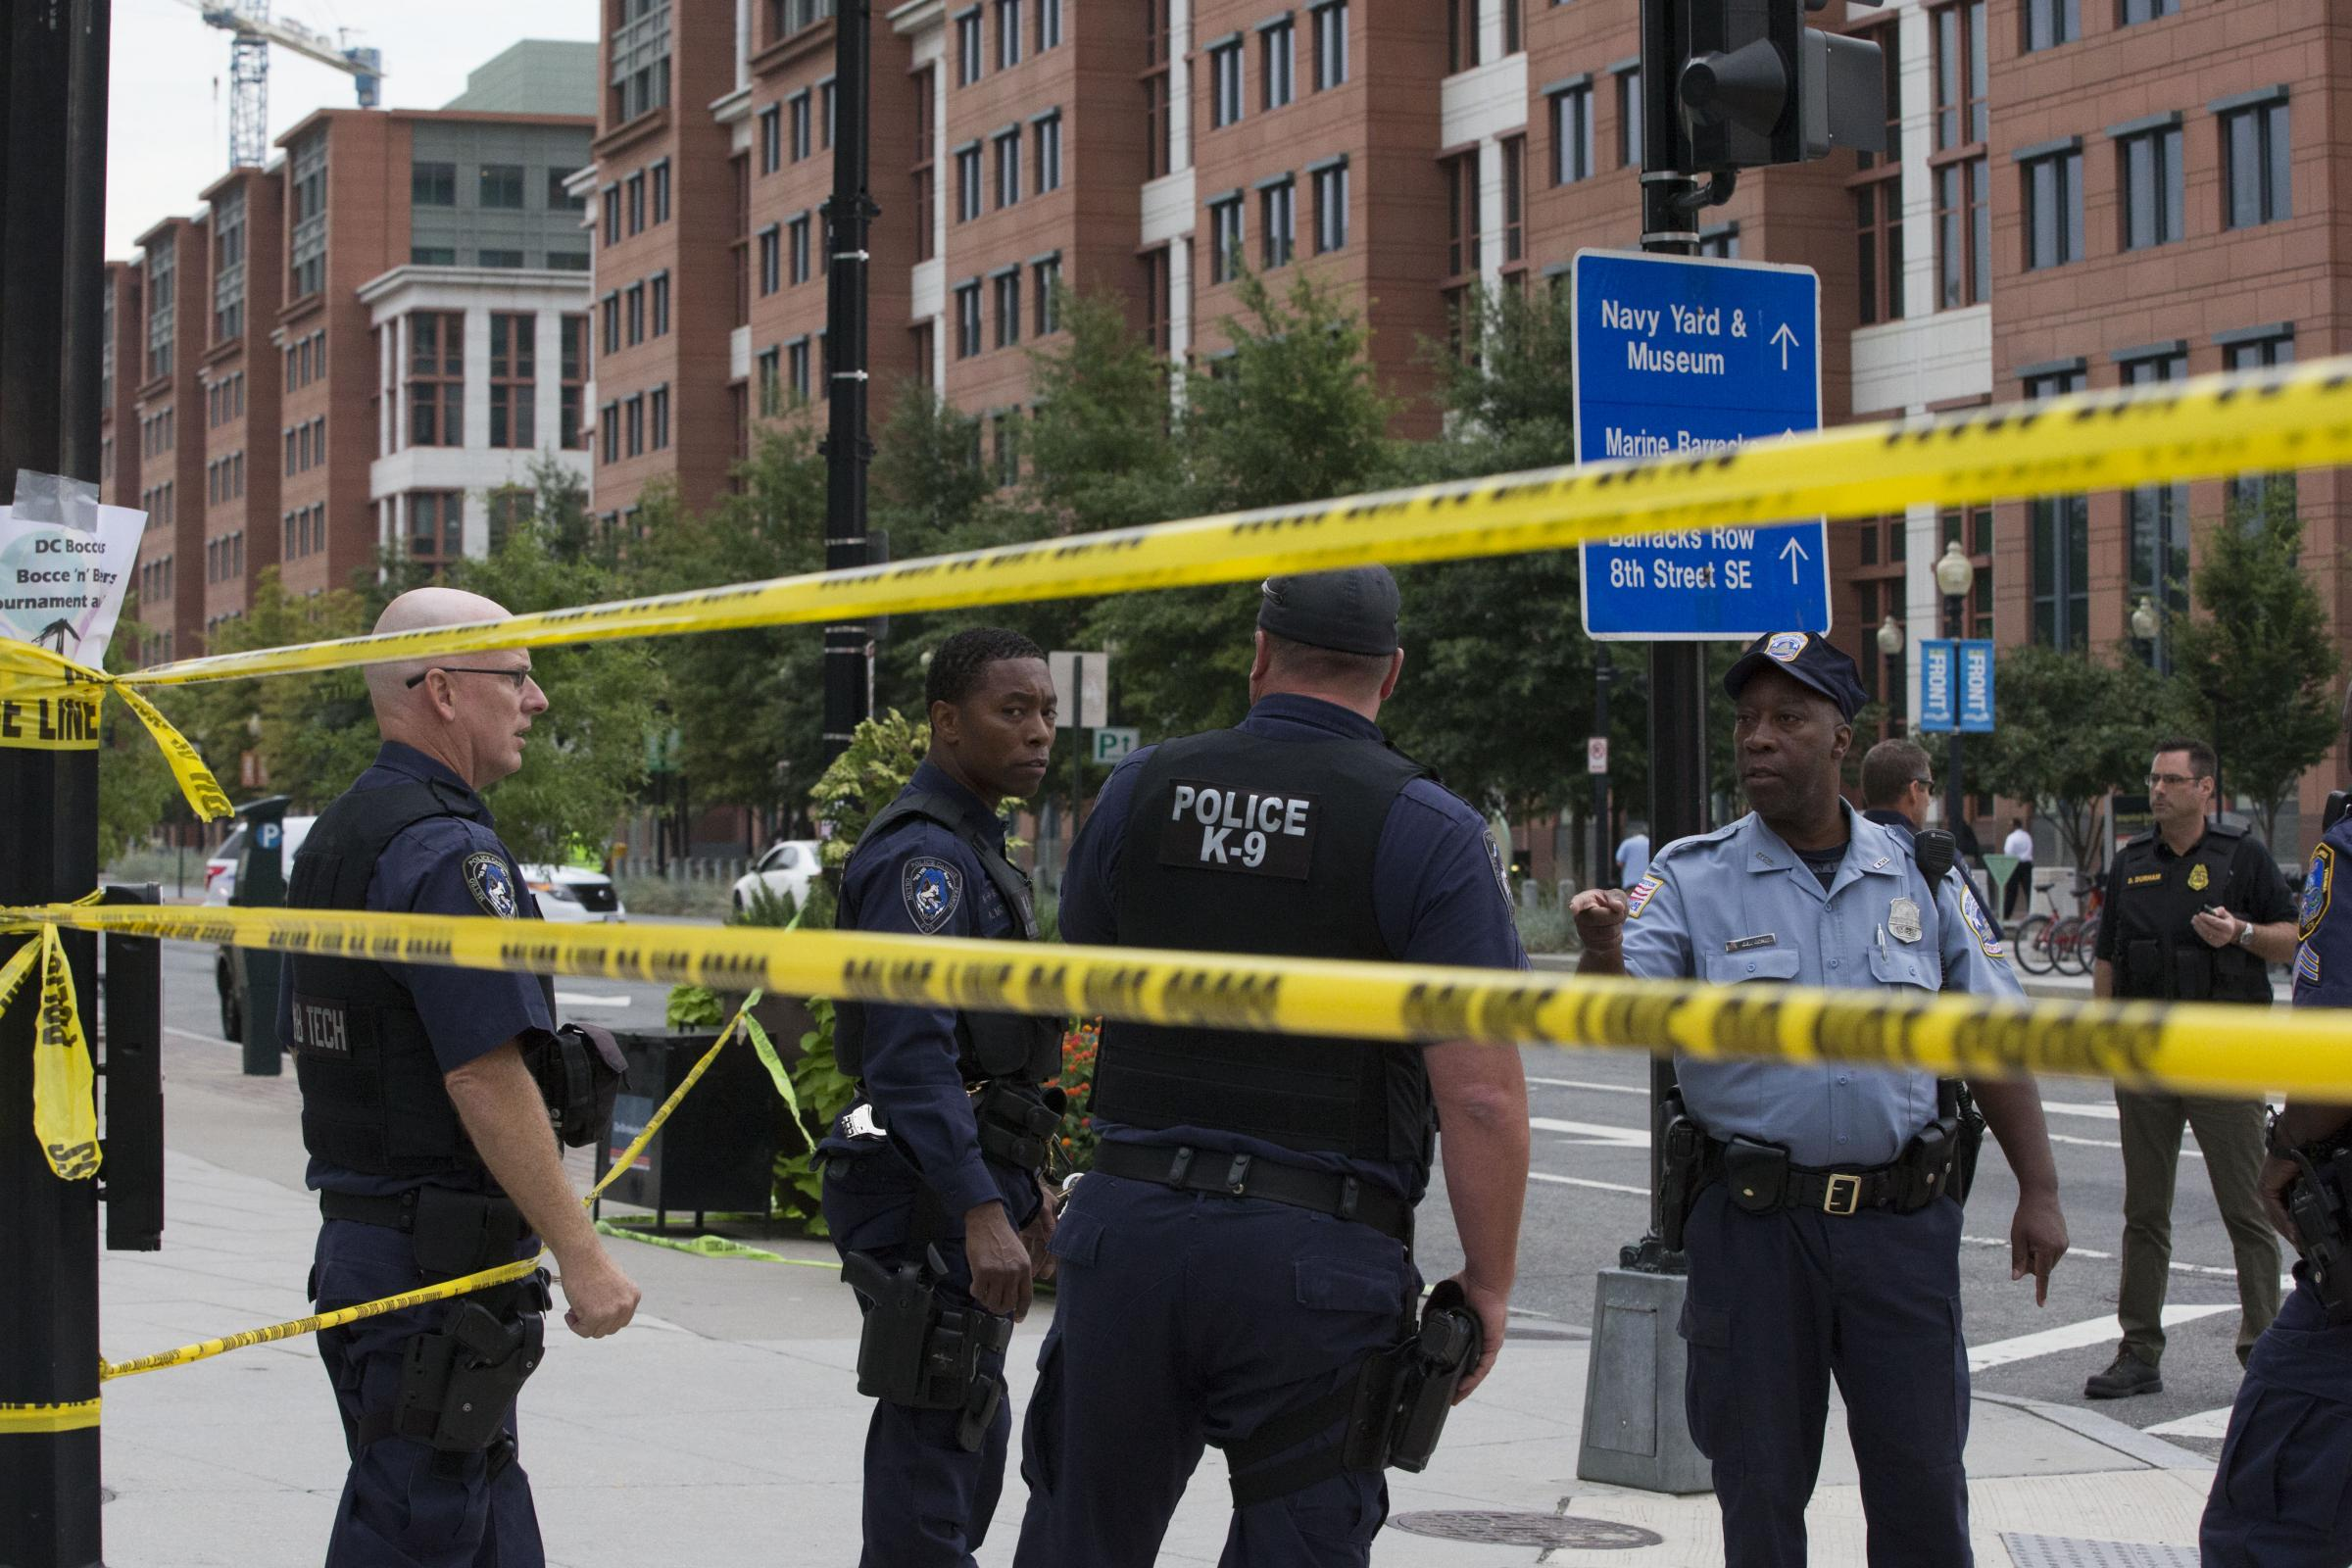 shooting at navy yard washington Cctv footage of aaron alexis in building 197 holding a remington 870 shotgun the washington navy yard shooting occurred on september 16, 2013, when lone gunman aaron.